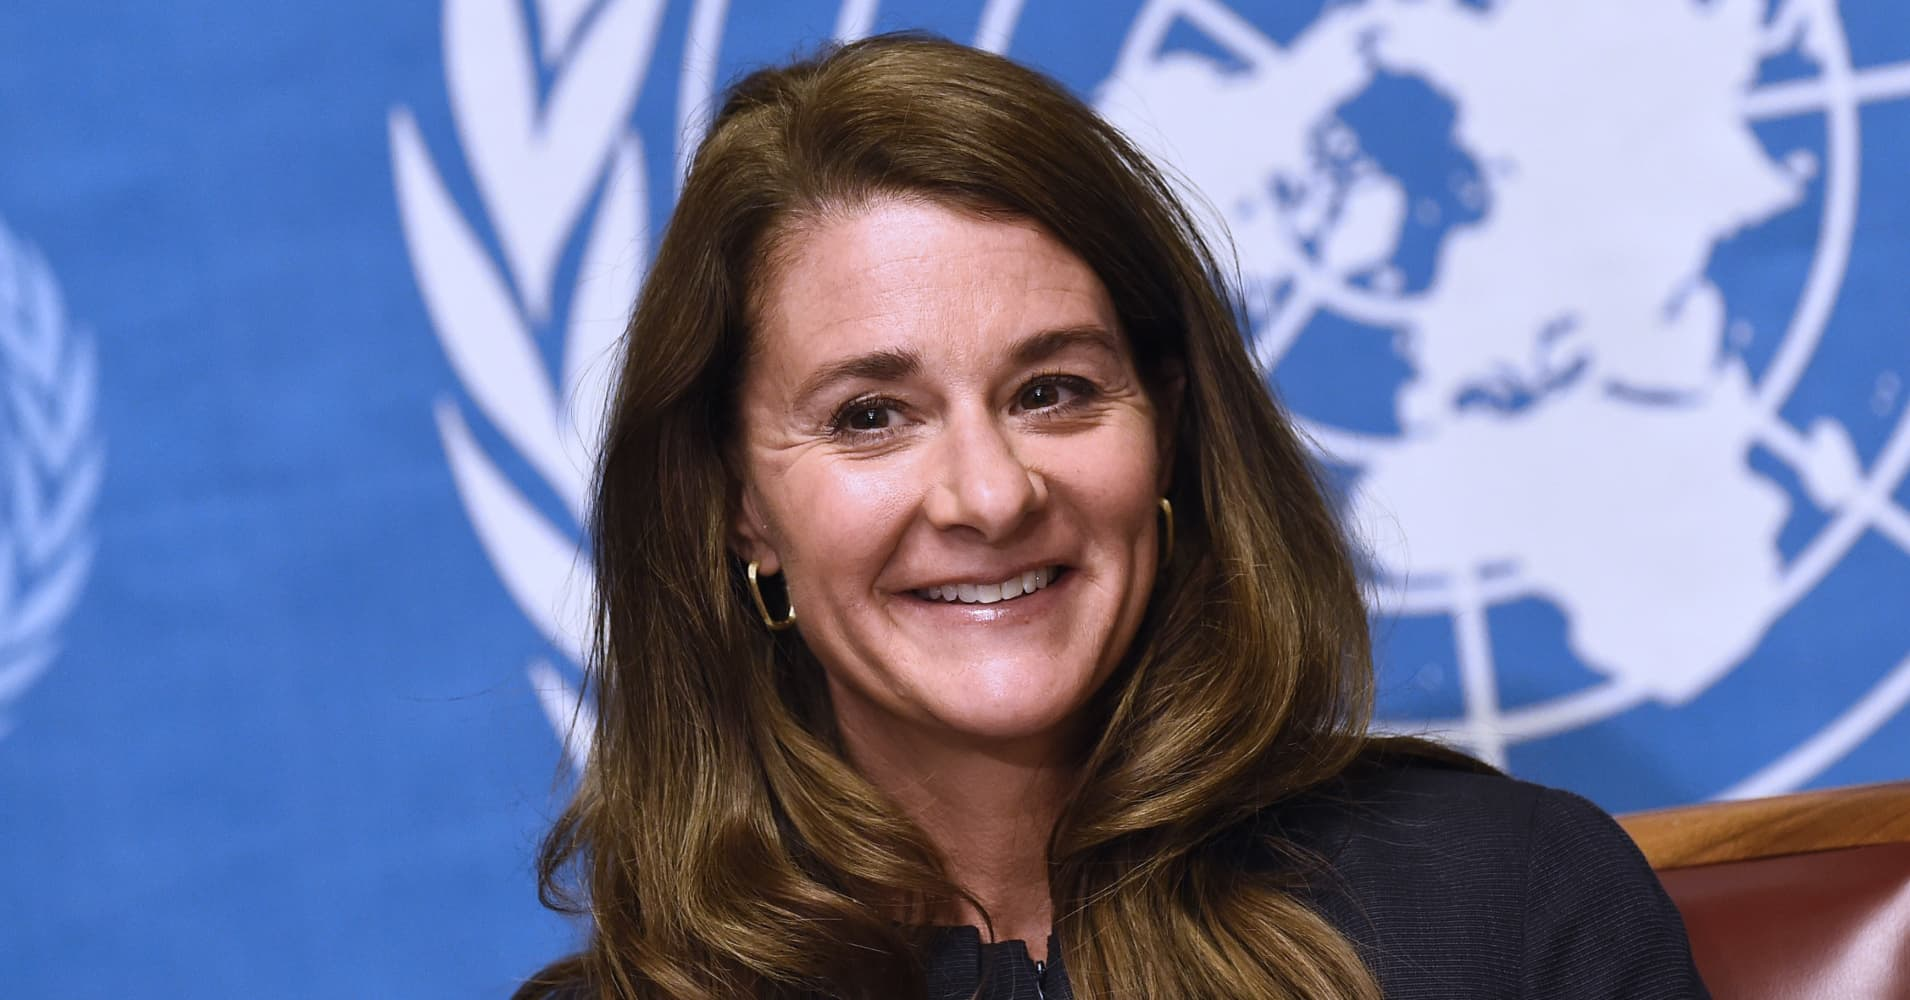 Image result for photos of Melinda Gates